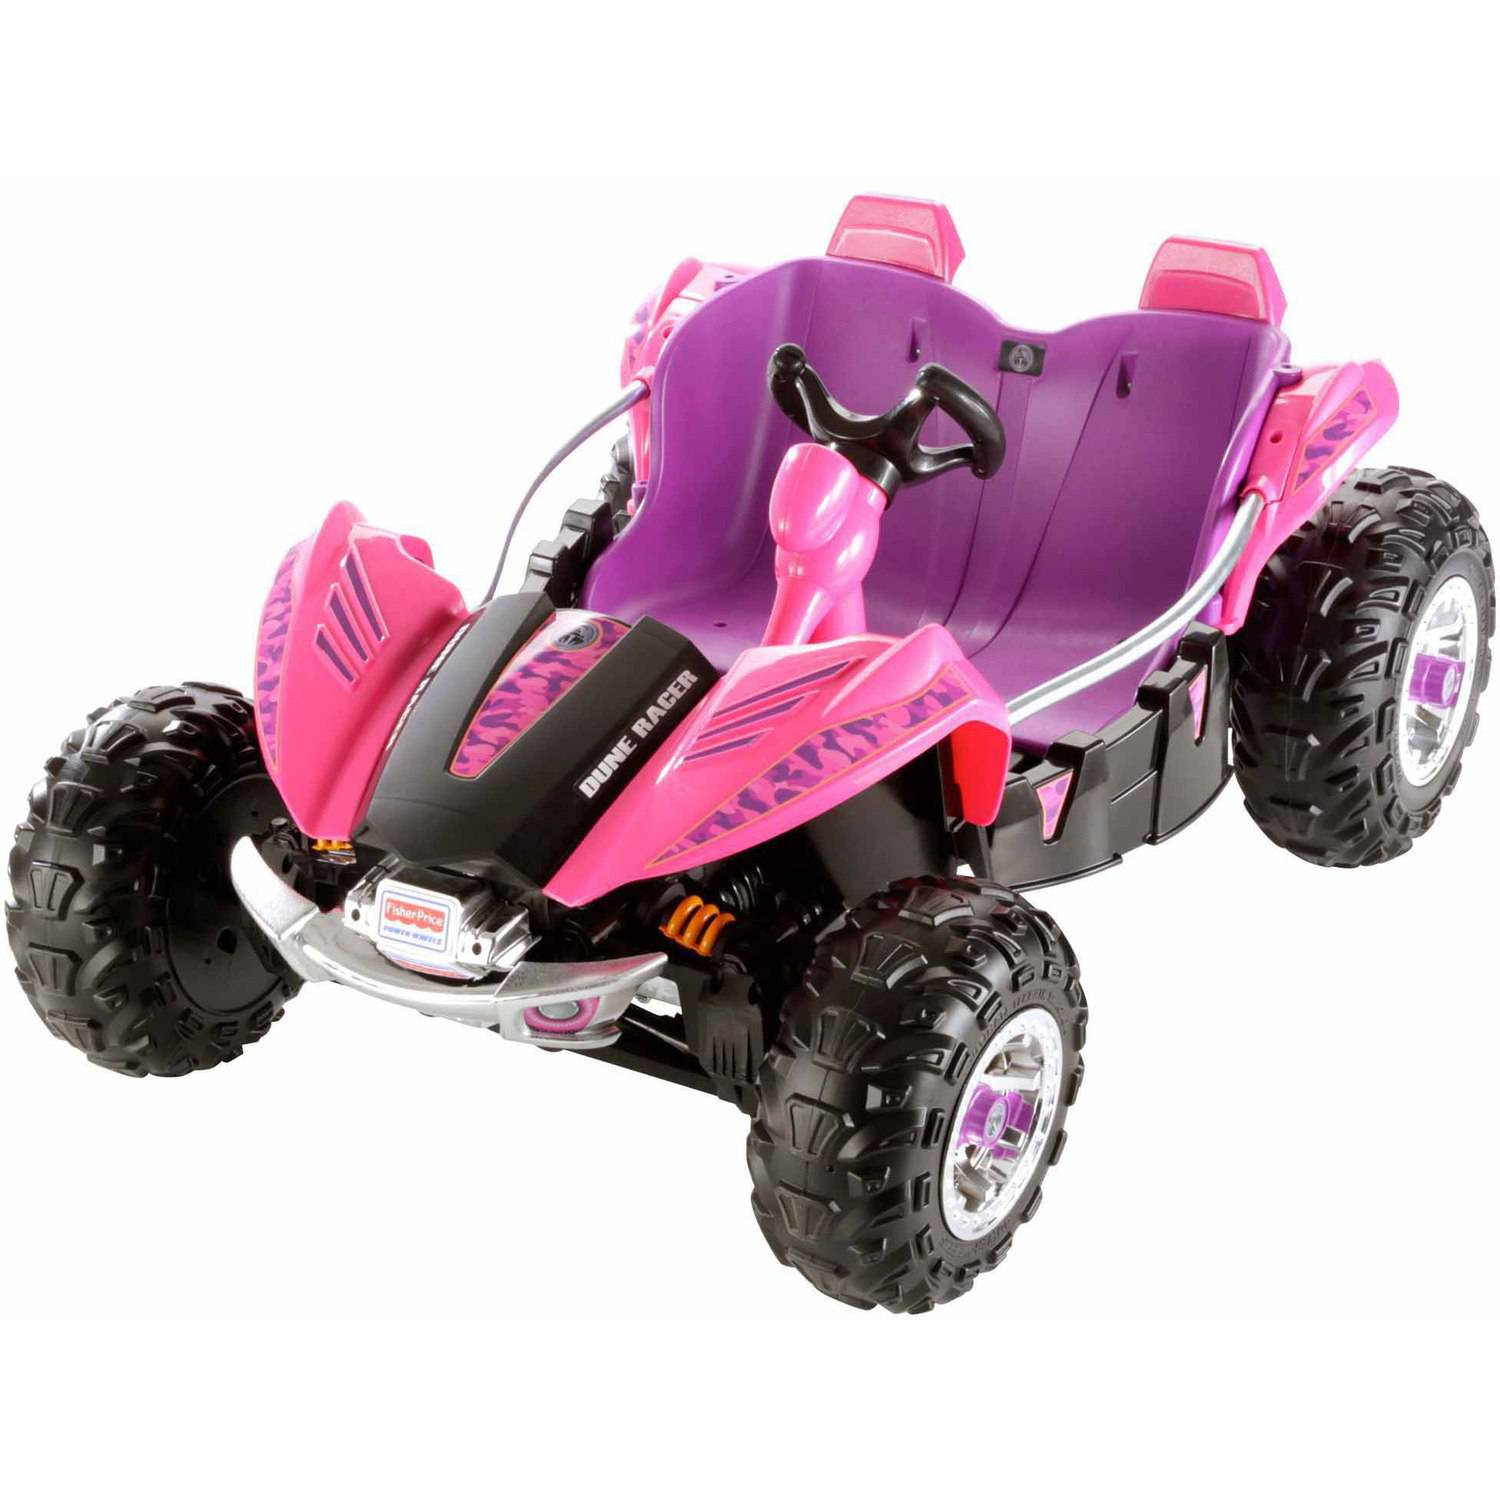 Fisher-Price Power Wheels Dune Racer 12-Volt Battery-Powered Ride-On, Pink